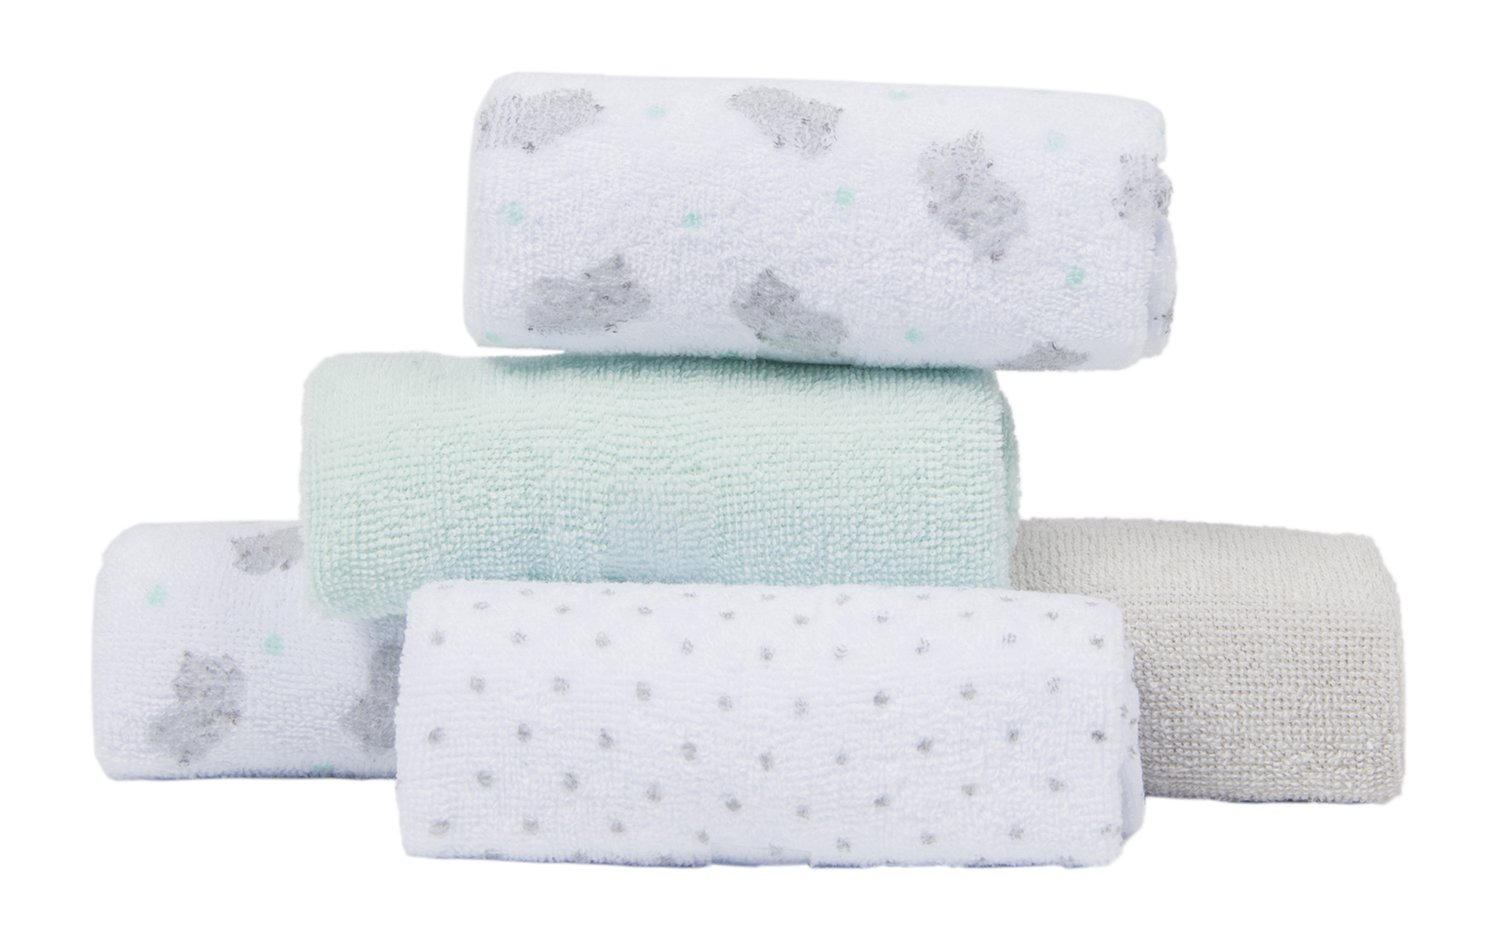 Rhinoceros Softan Baby Bath Towel Set 5+1 Great Gifts Pack Baby Hooded Towel with Wash Cloths